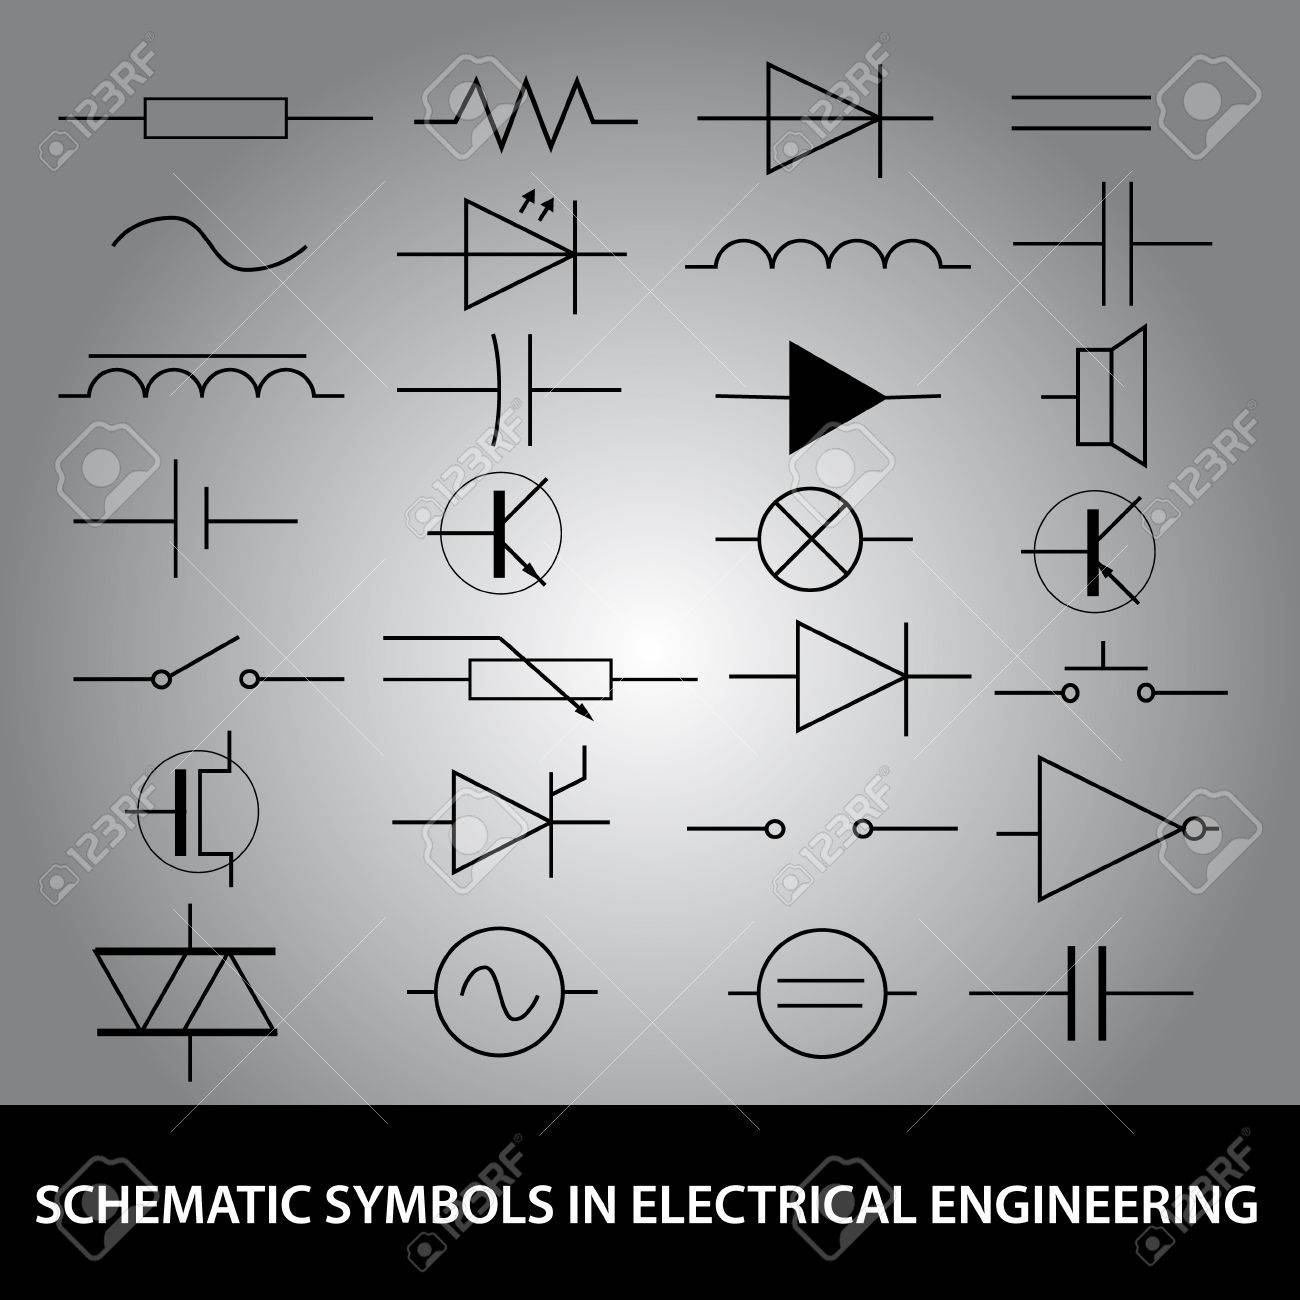 hight resolution of schematic symbols in electrical engineering icon set stock vector 24120410